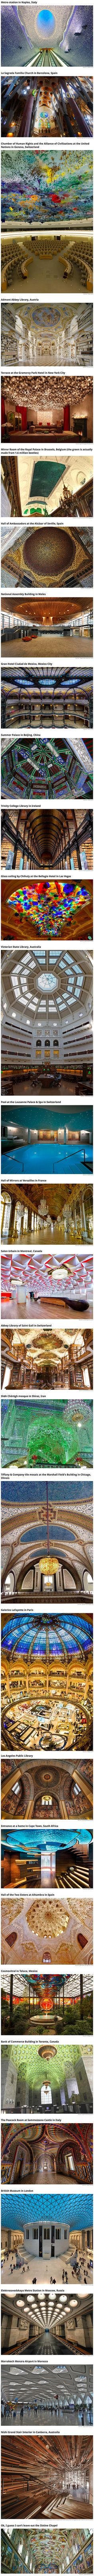 Most people have pretty boring white ceilings. These ceilings from all over the world are the exact opposite of boring.